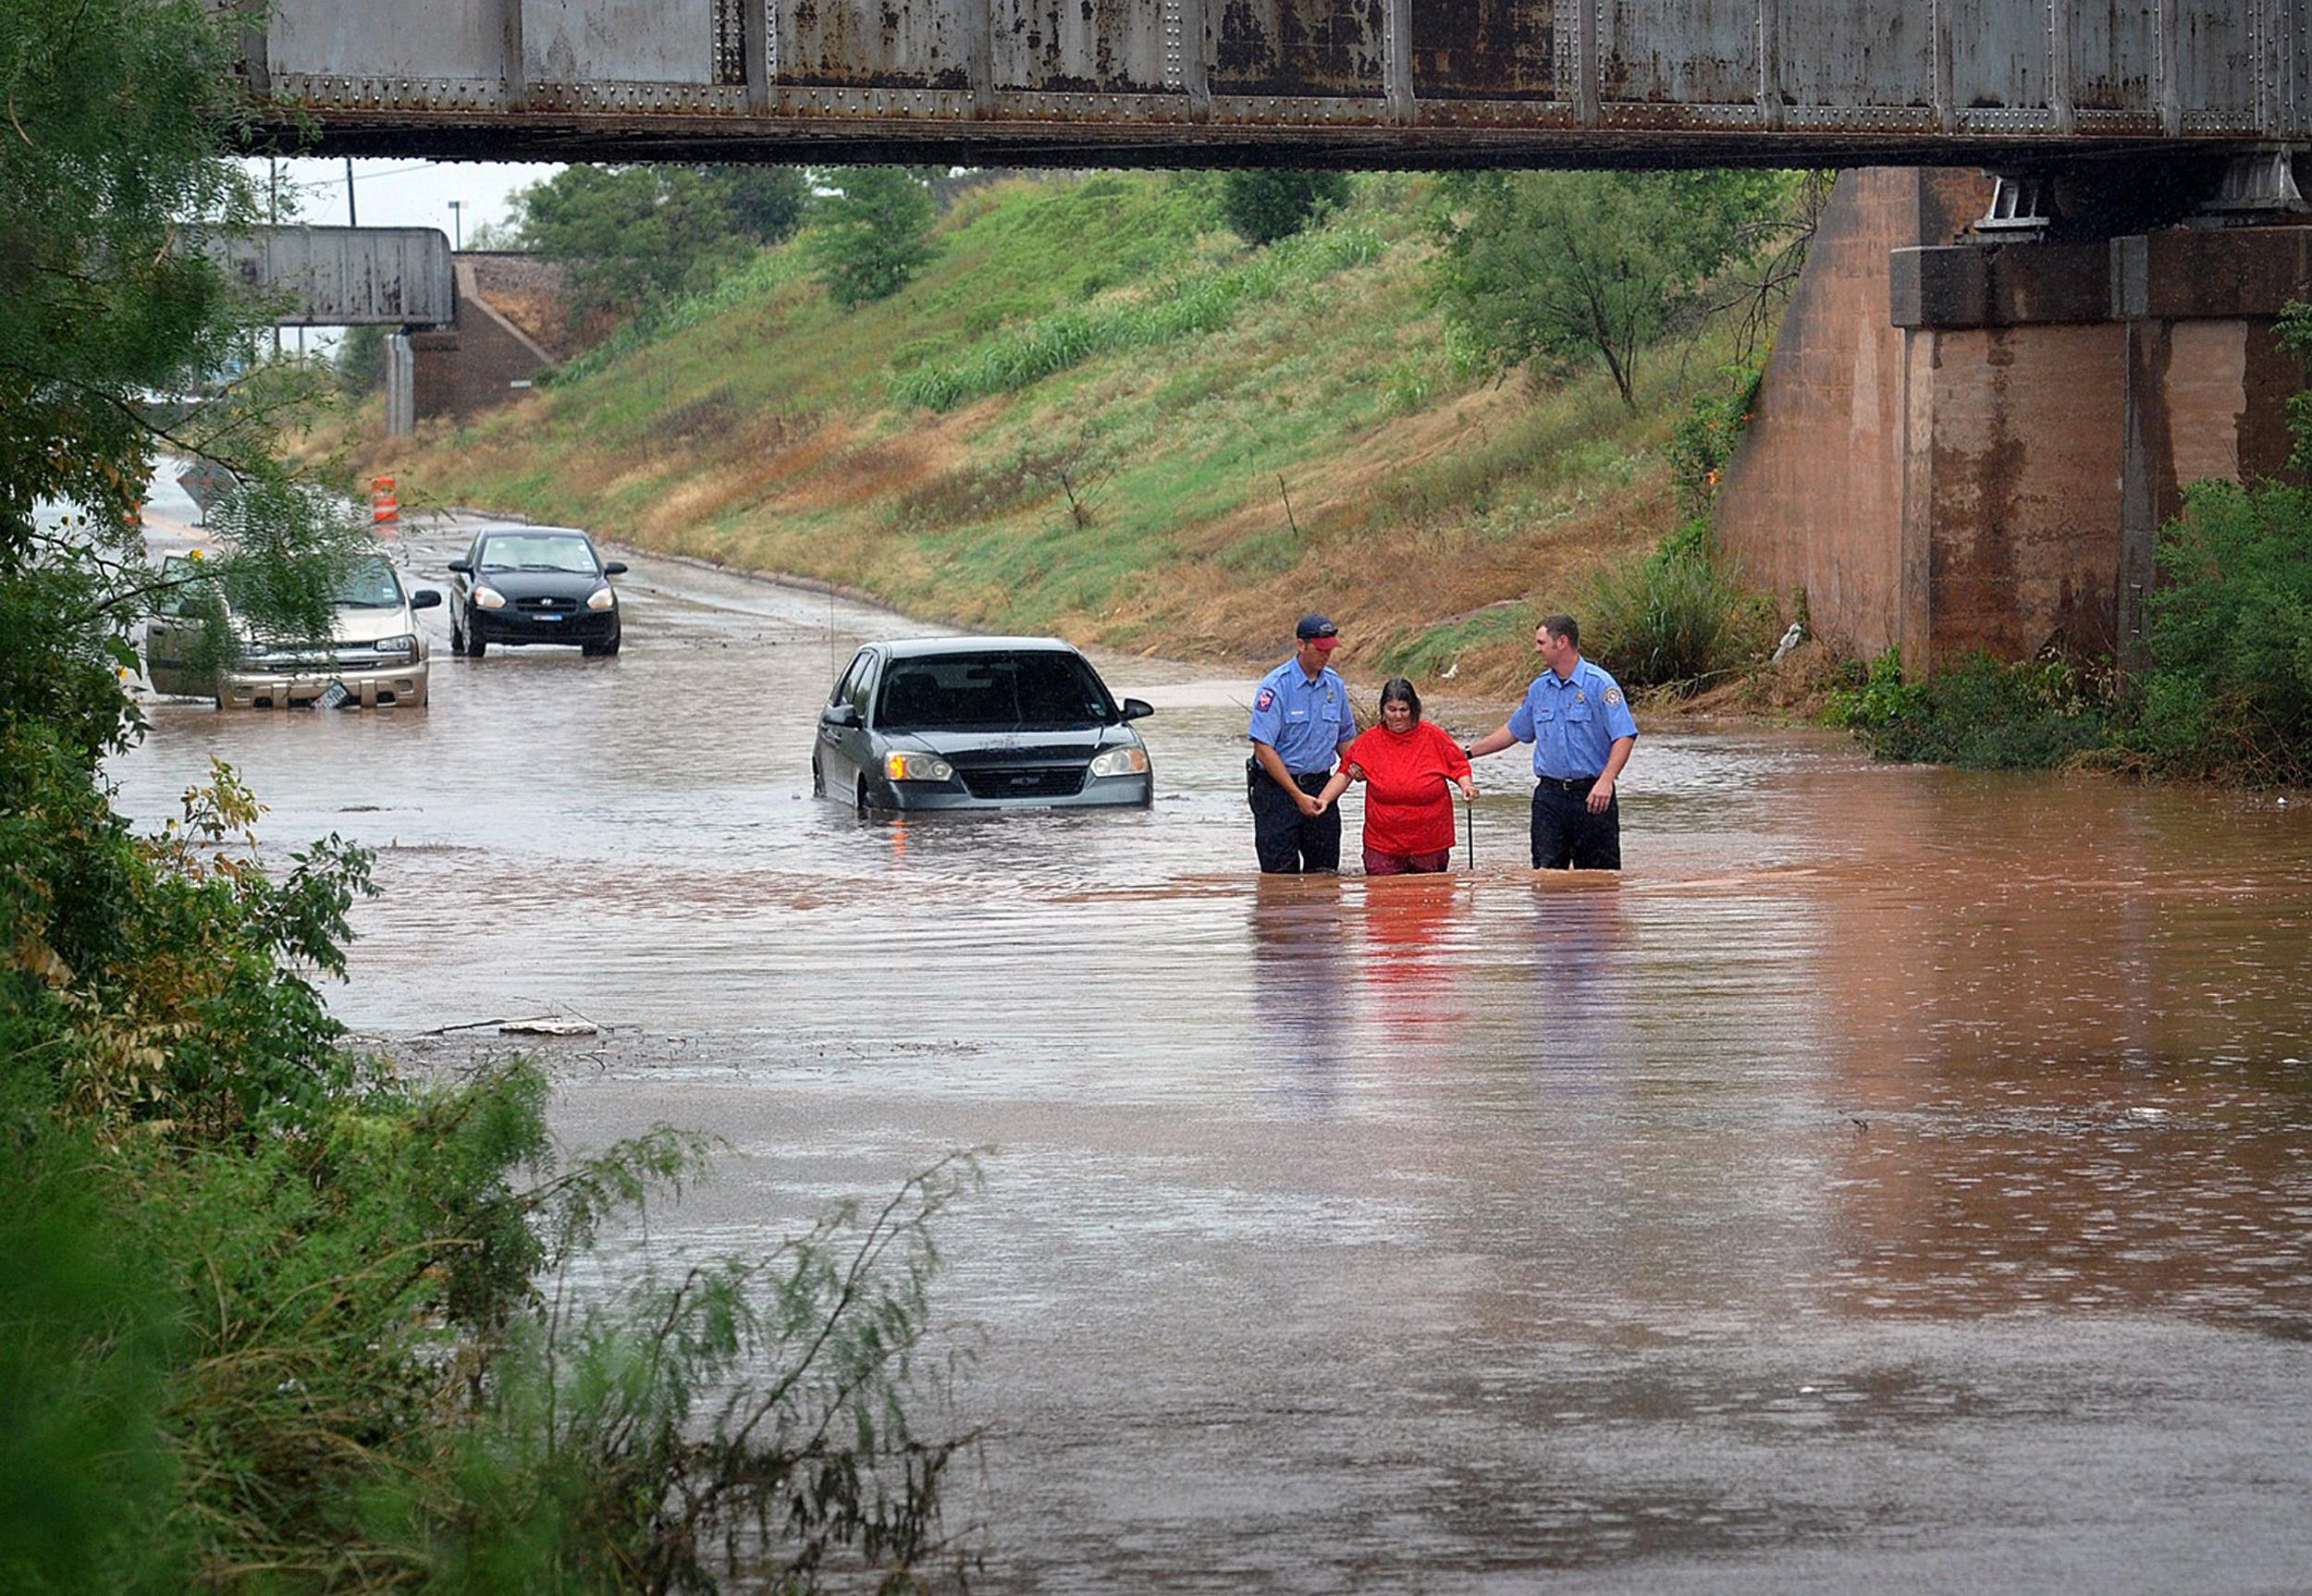 Image: Firefighters rescue a woman Thursday after her car stalled in high water in Wichita Falls, Texas.